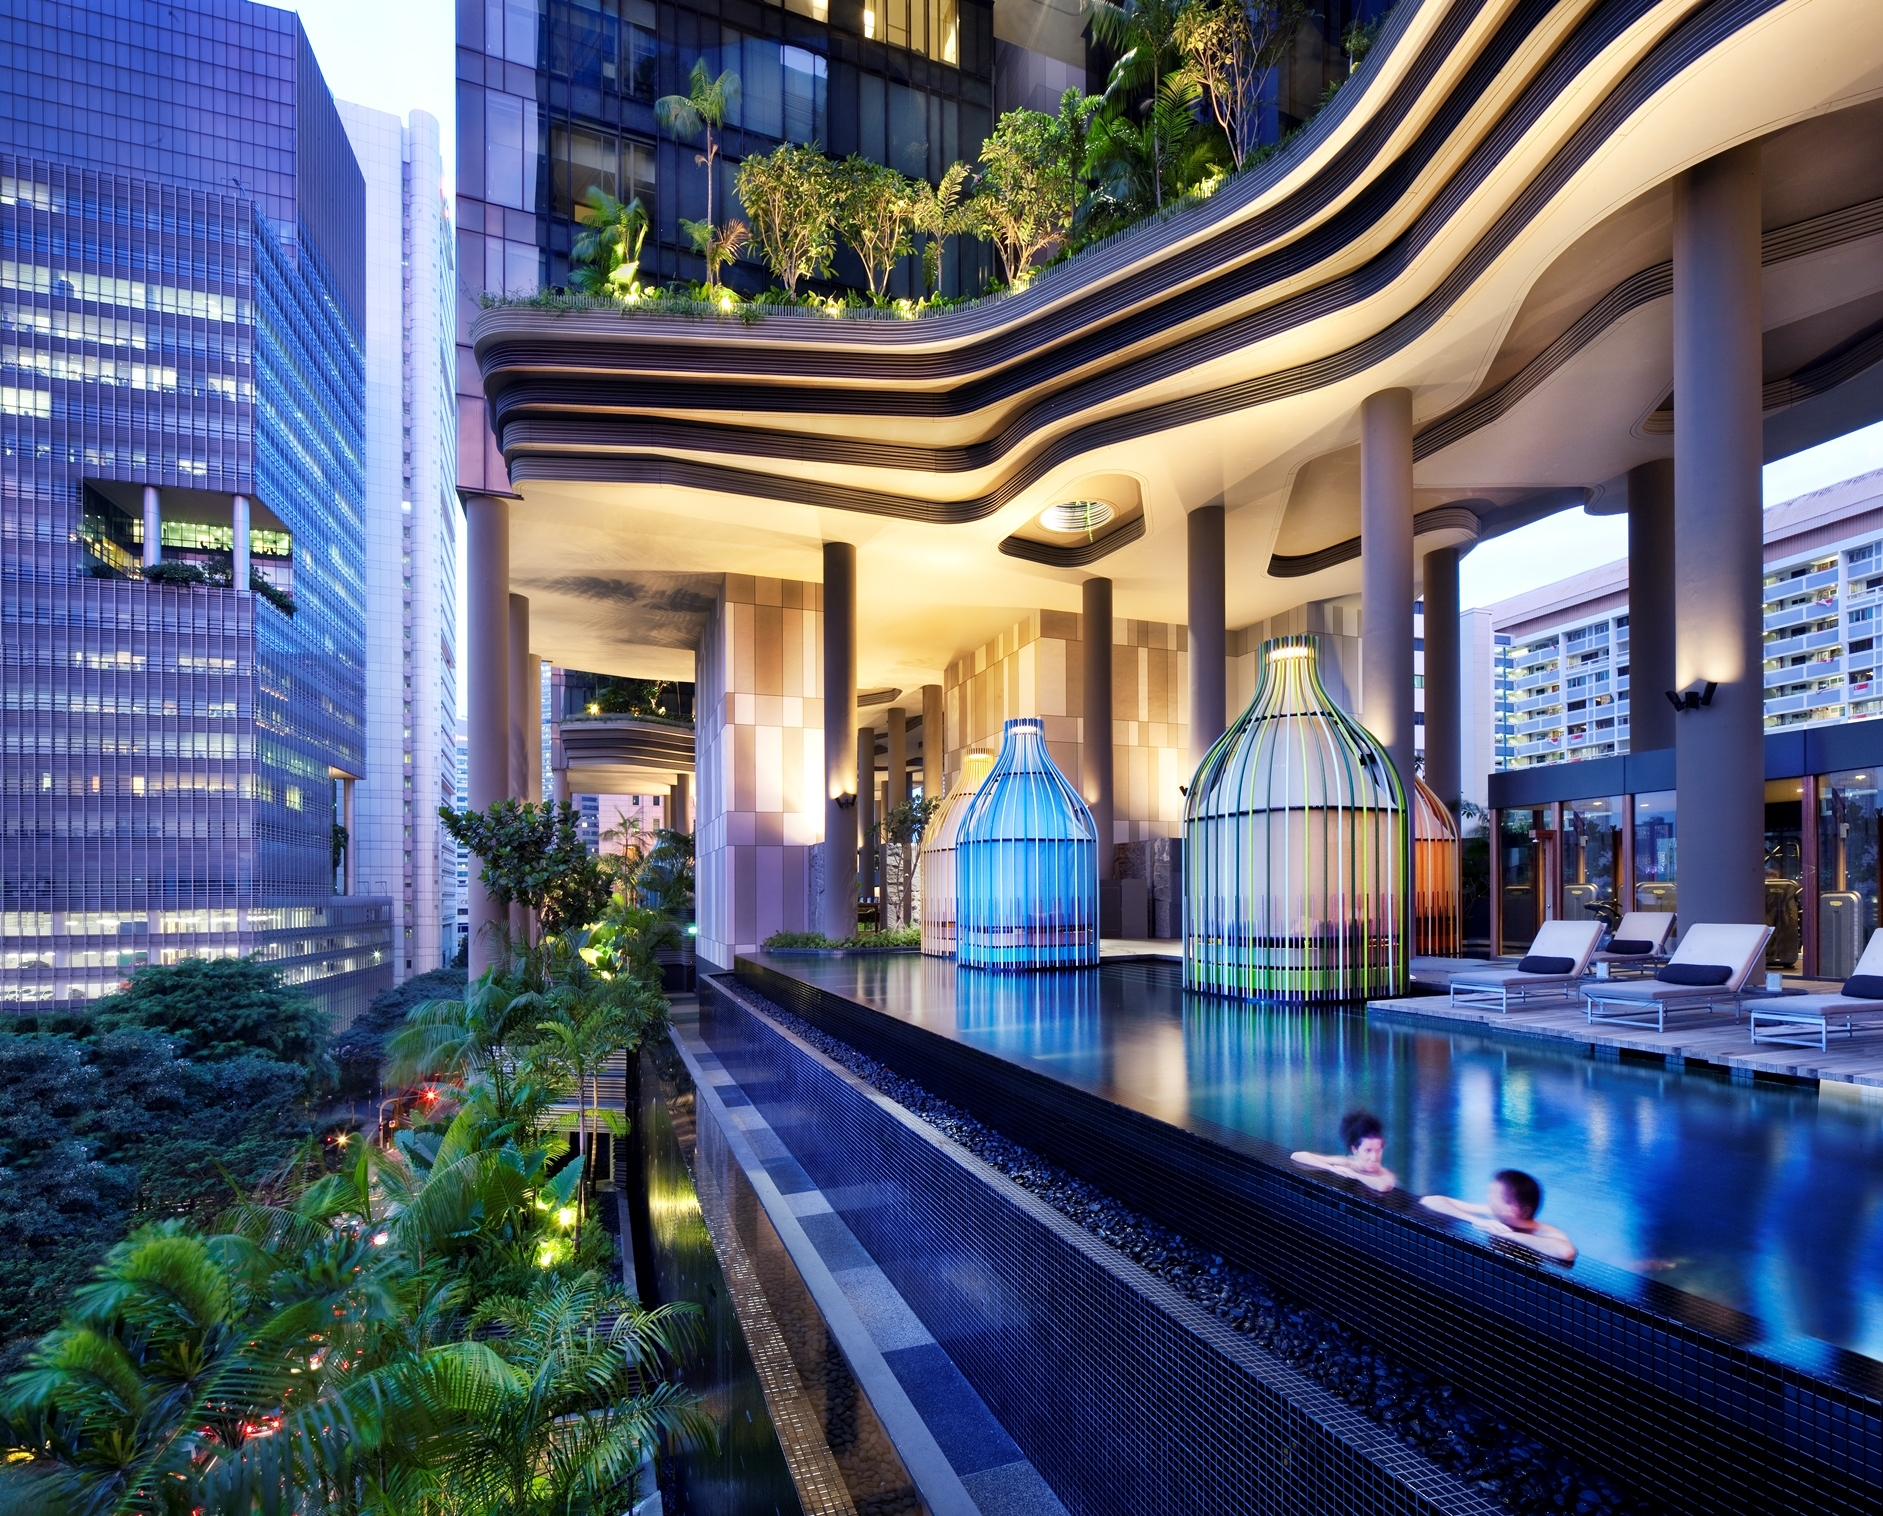 Contest: Win a 2D1N weekend stay in an Orchid Club Deluxe Room at PARKROYAL on Pickering